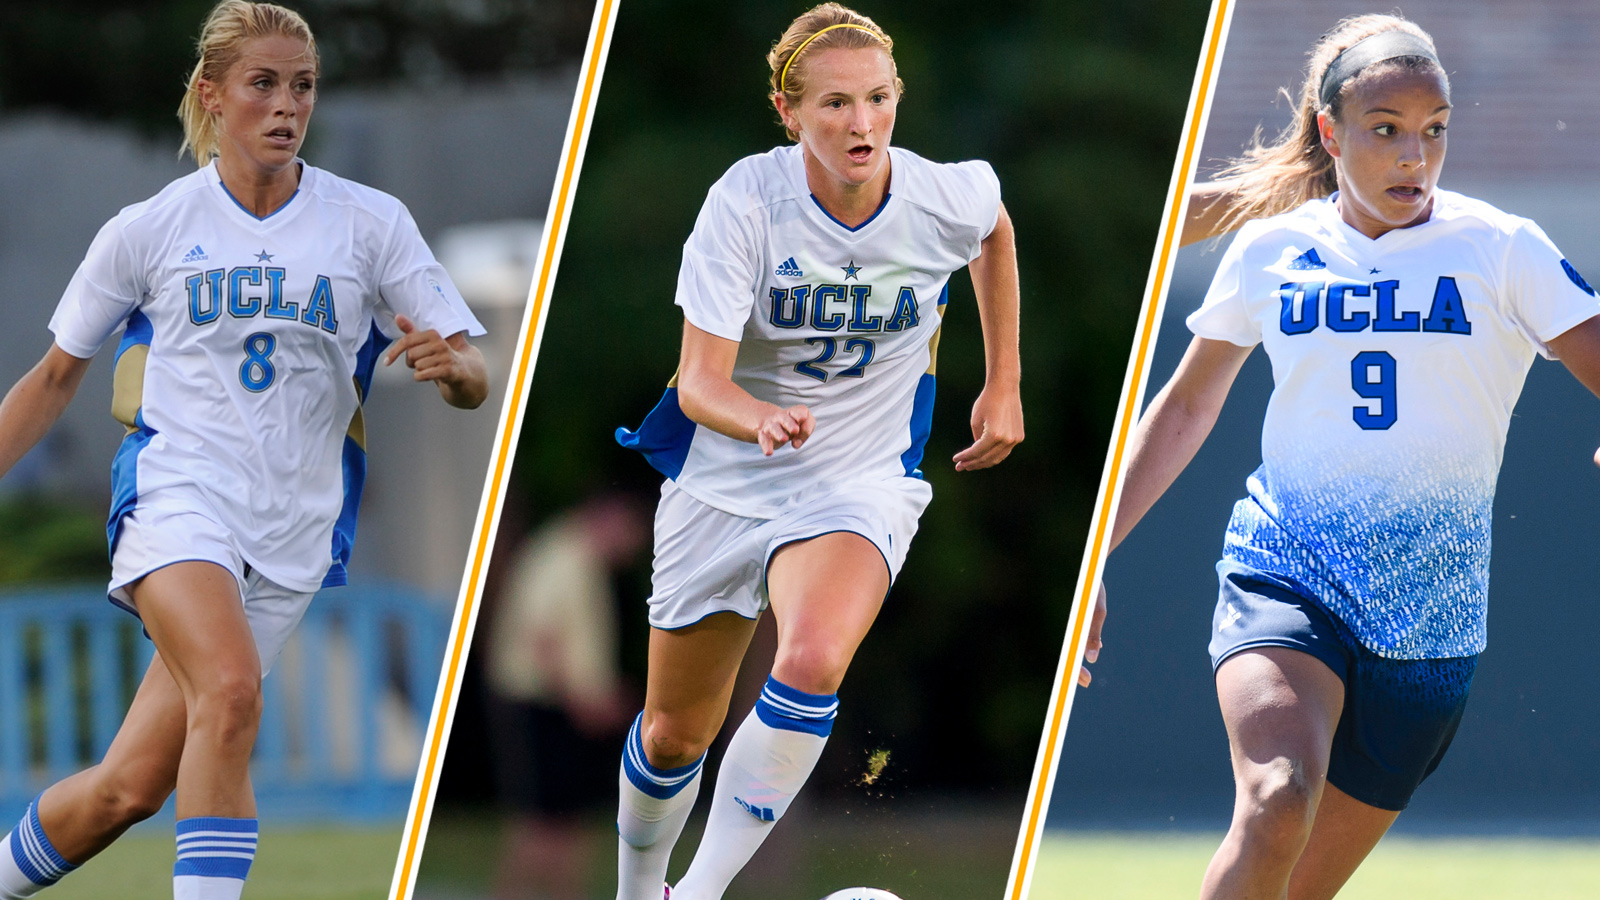 bfe919580 Bruin Trio Selected to U.S. Women s World Cup Team - UCLA